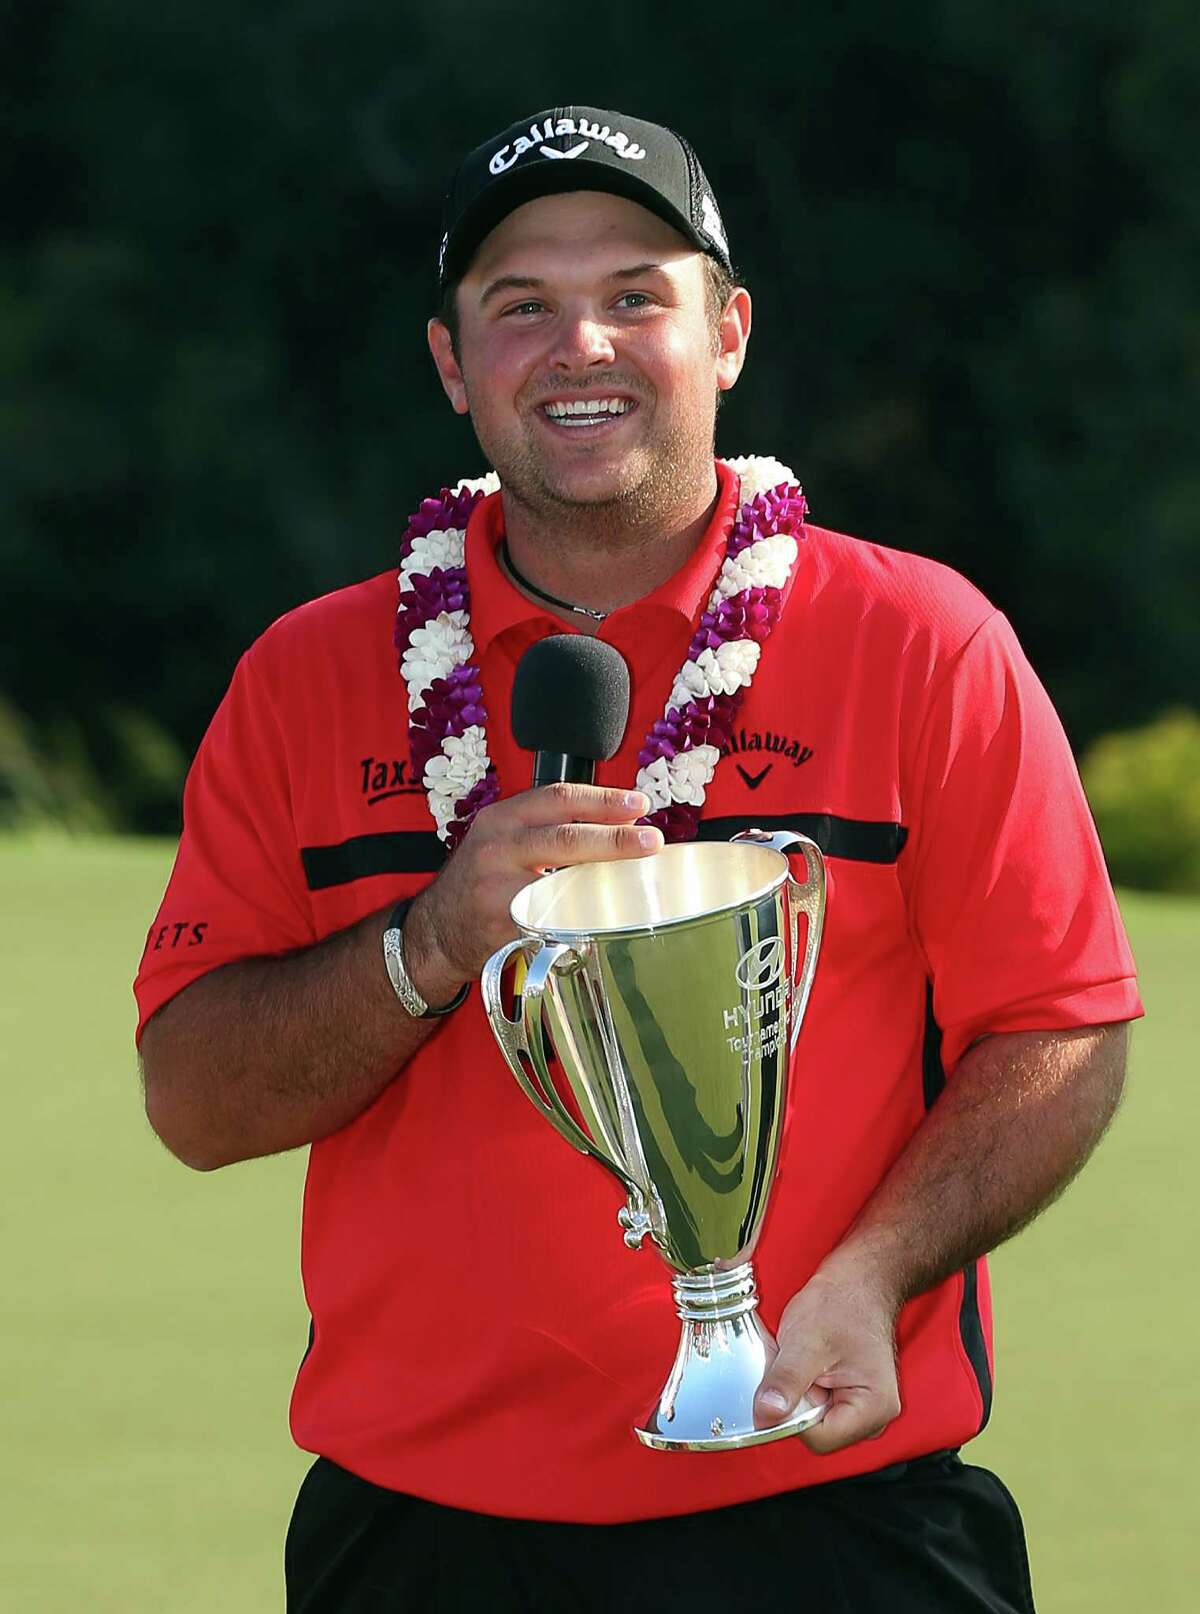 LAHAI NA, HI - JANUARY 12: Patrick Reed poses with the winner's trophy after winning during the final round of the Hyundai Tournament of Champions at Plantation Course at Kapalua Golf Club on January 12, 2015 in Lahaina, Hawaii. (Photo by Mike Ehrmann/Getty Images)